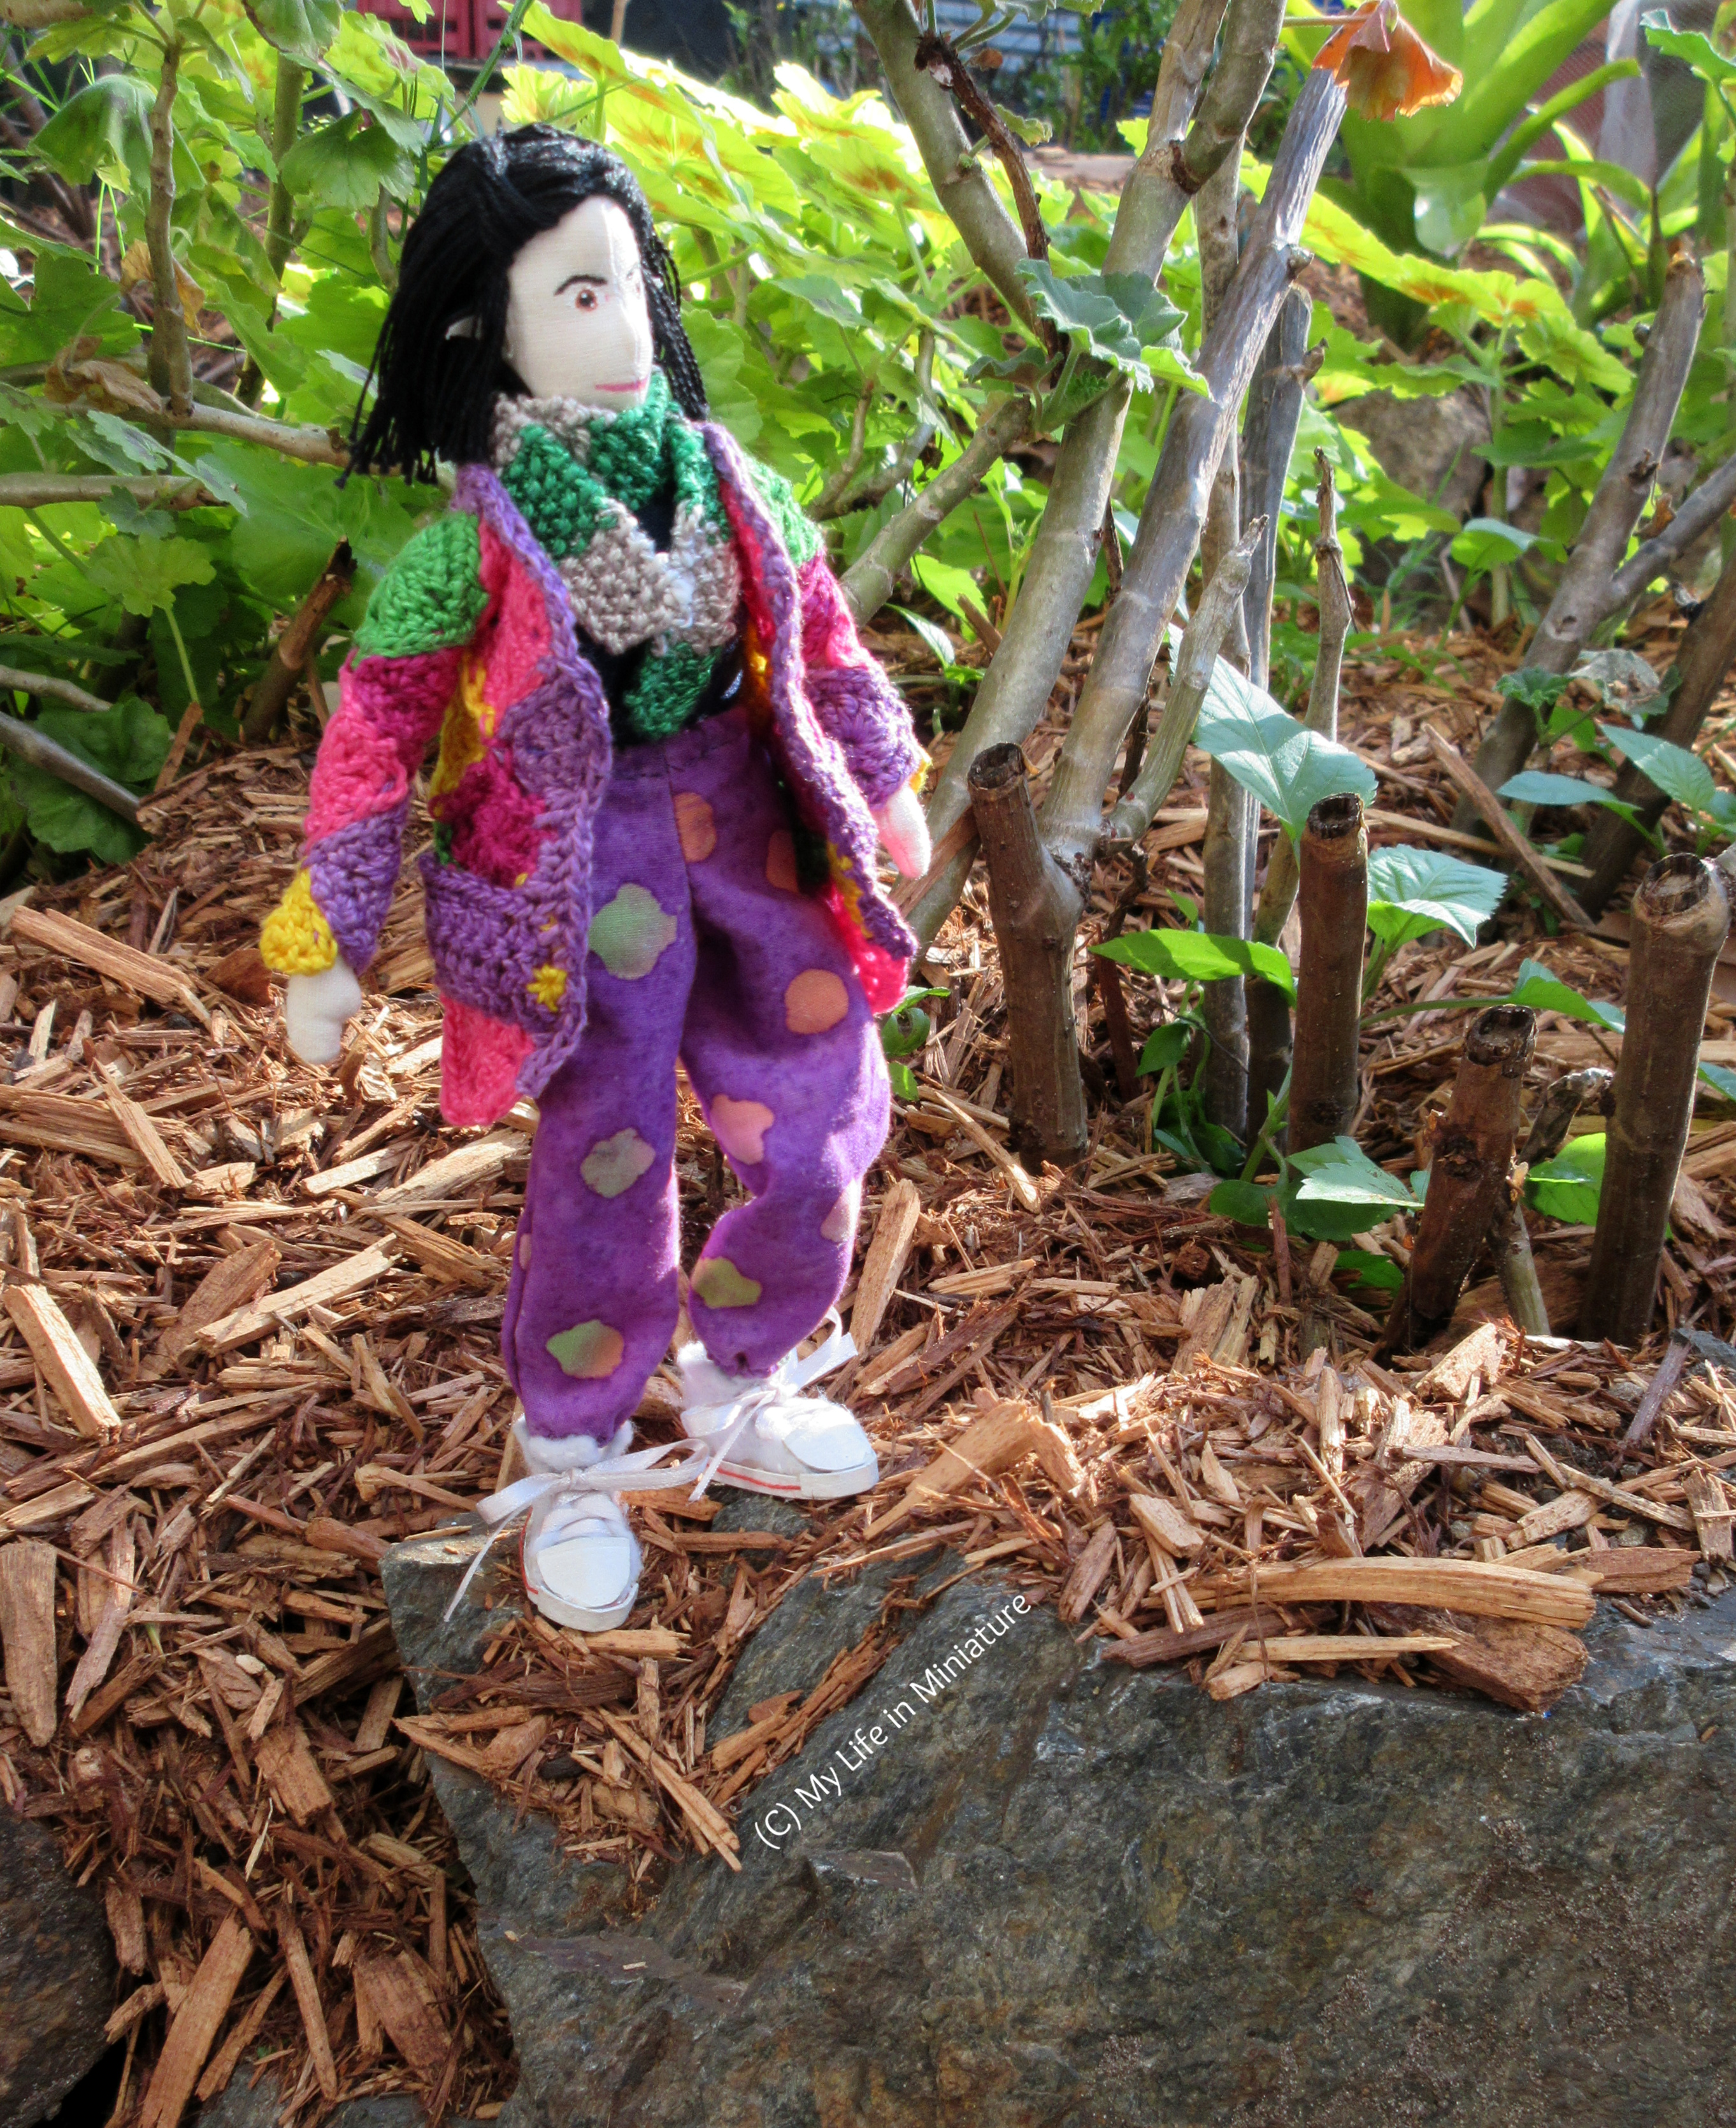 Tiffany stands upon a rock with plants in the background, looking heroically up to the sky. She wears the loose purple pants, crocheted cardigan, and scarf.